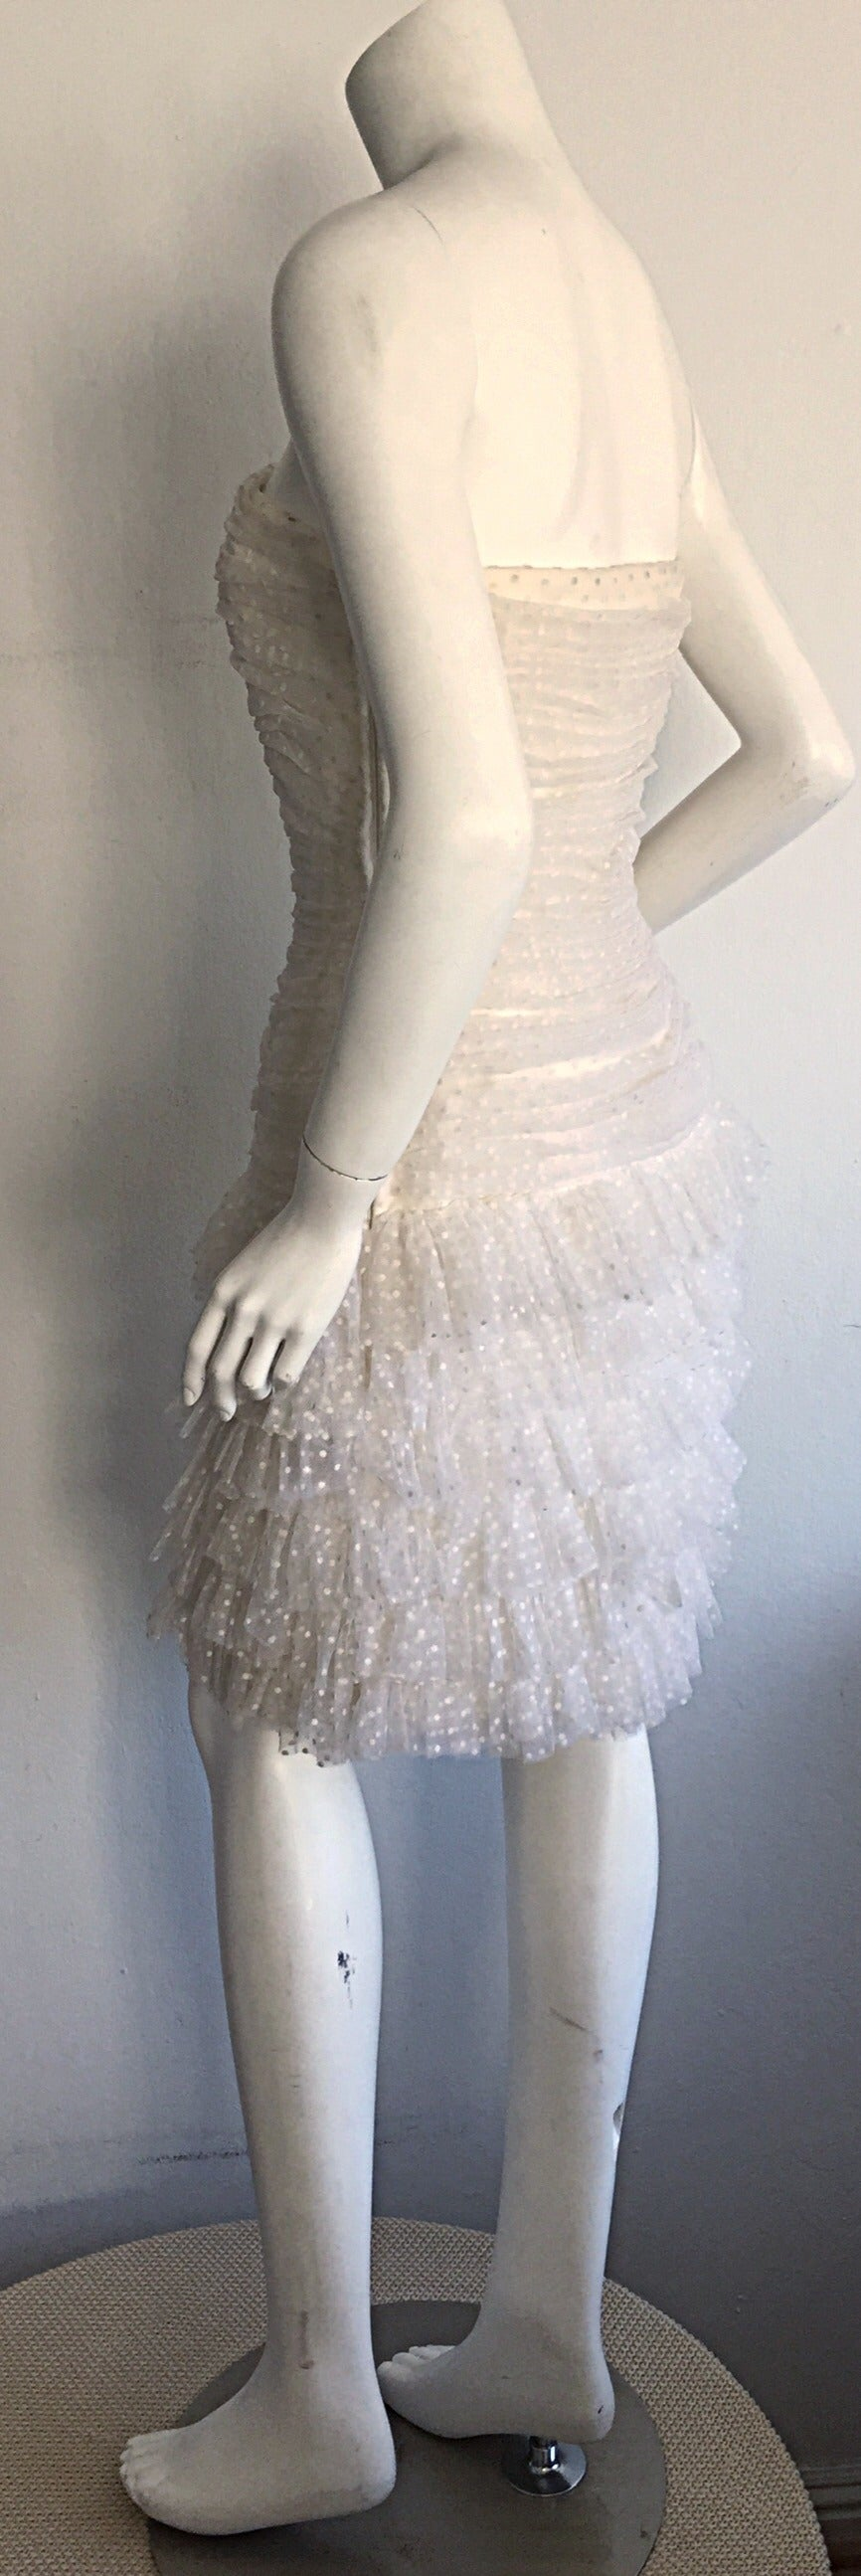 1990s Carolyne Roehm White Polka Dot ' Feathered ' Strapless Wedding Dress 7